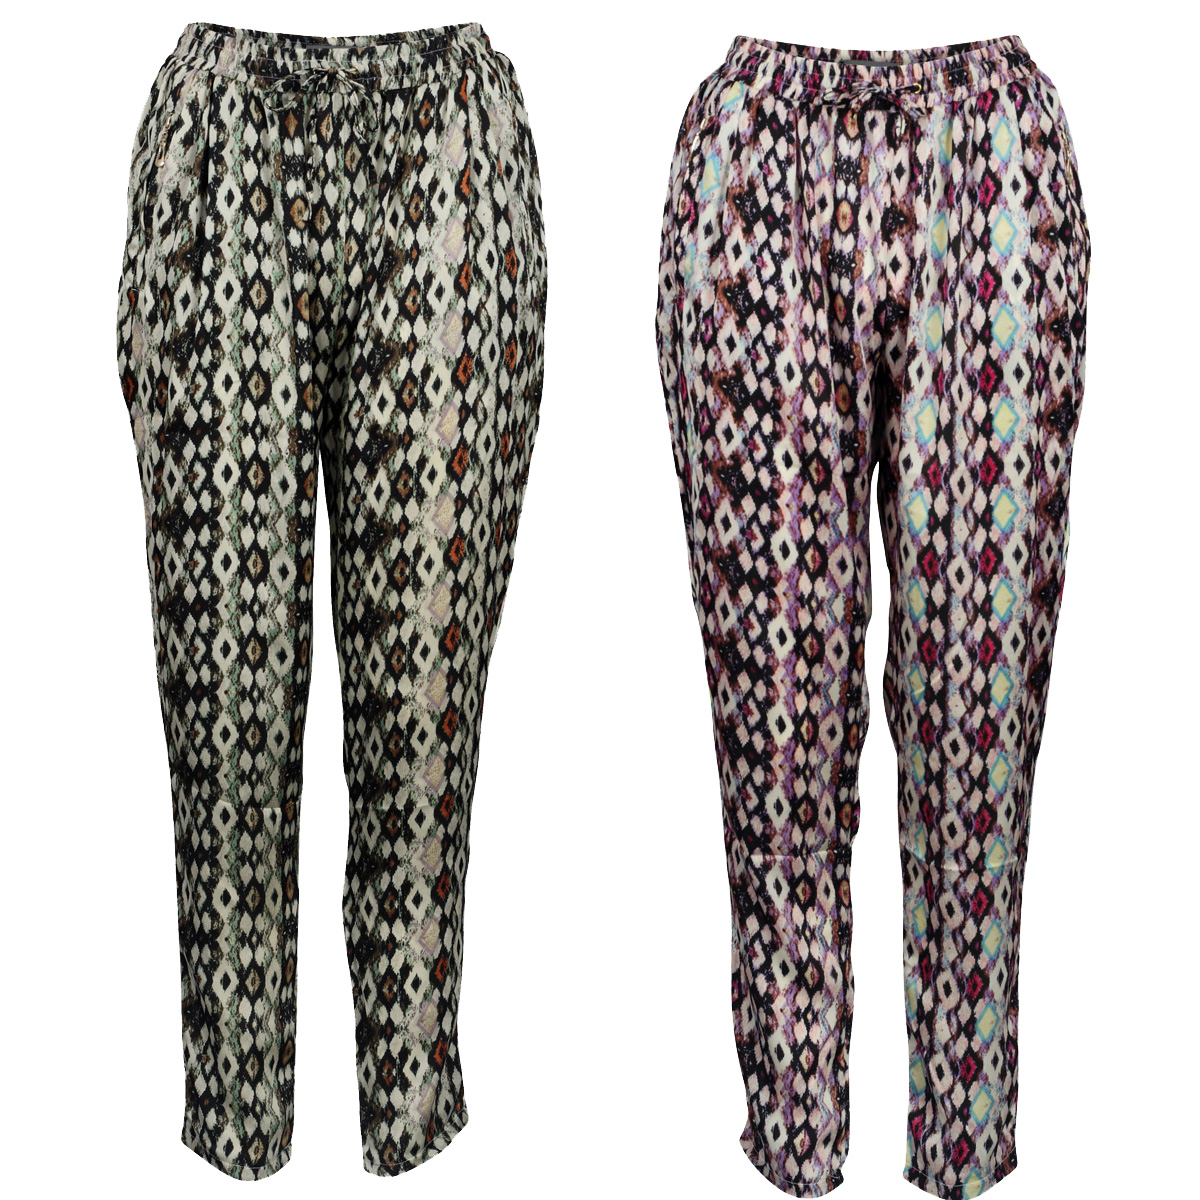 You searched for: women print trousers! Etsy is the home to thousands of handmade, vintage, and one-of-a-kind products and gifts related to your search. No matter what you're looking for or where you are in the world, our global marketplace of sellers can help you .